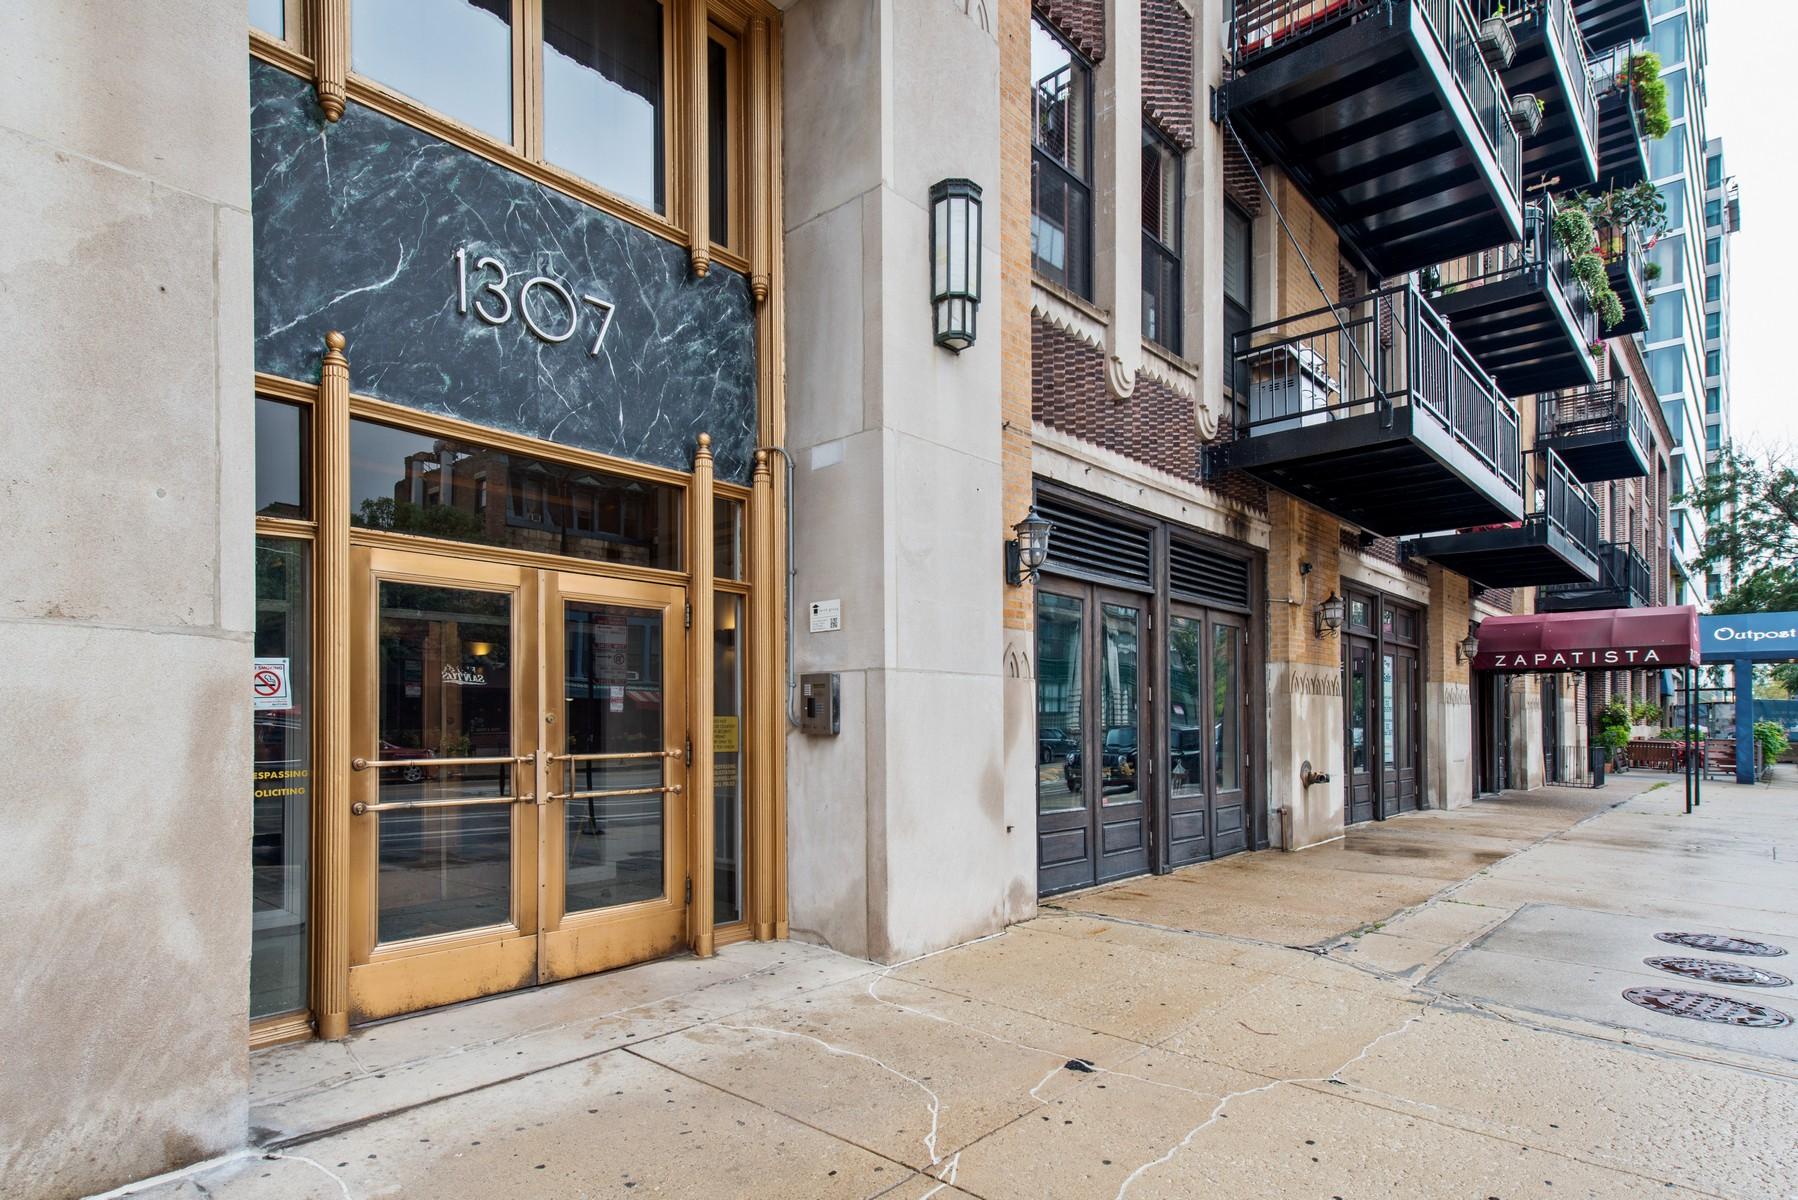 Condominium for Sale at Home in the South Loop 1307 S Wabash Avenue Unit 602 Near South Side, Chicago, Illinois, 60605 United States